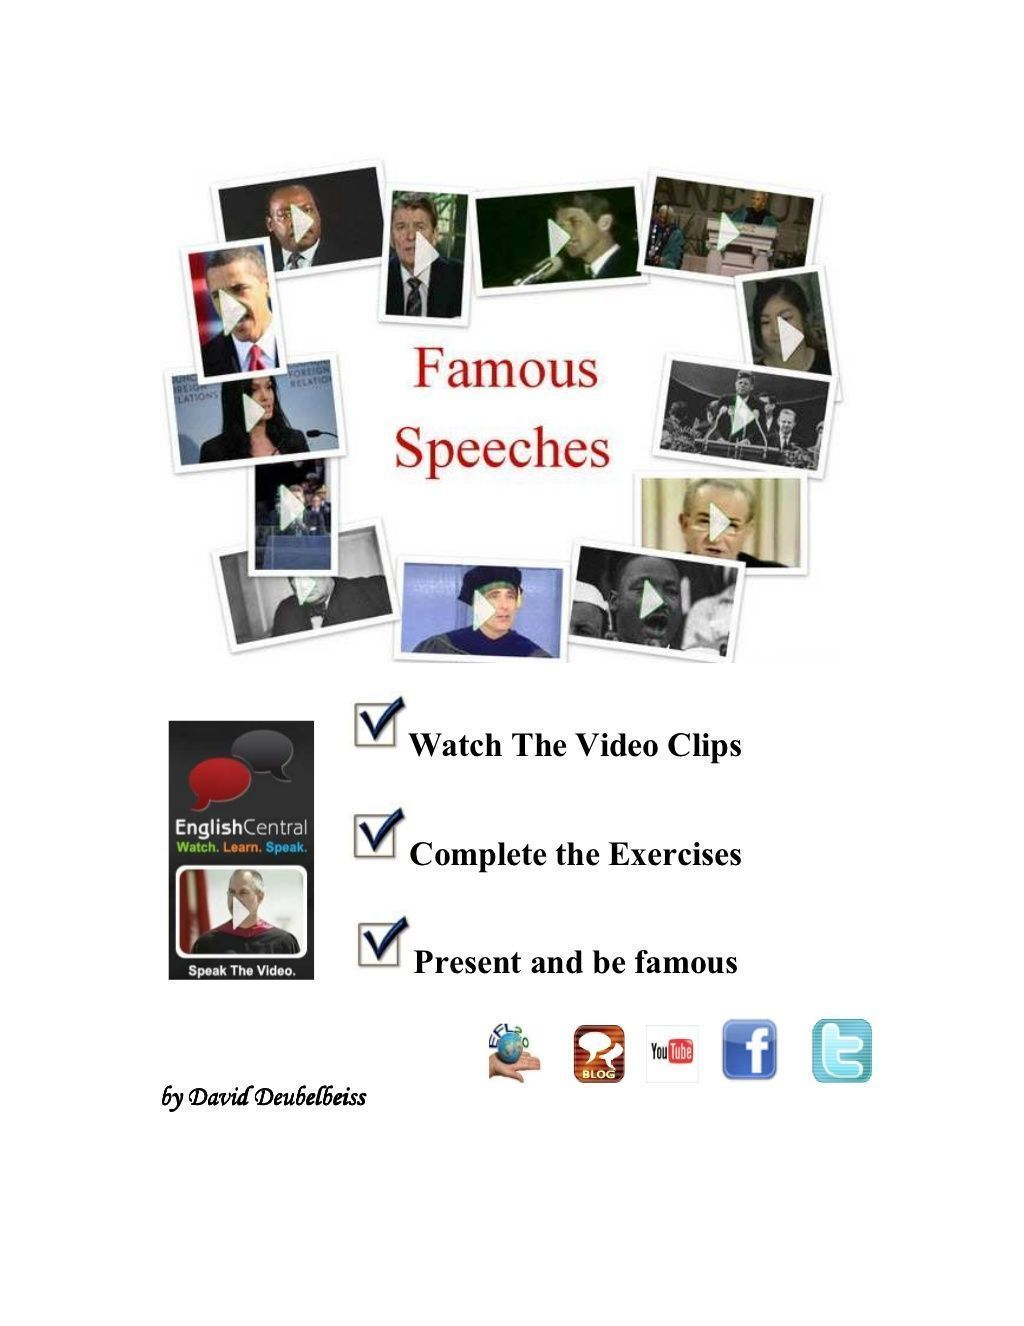 20-famous-speeches by David Deubelbeiss via Slideshare #famousspeeches 20-famous-speeches by David Deubelbeiss via Slideshare #famousspeeches 20-famous-speeches by David Deubelbeiss via Slideshare #famousspeeches 20-famous-speeches by David Deubelbeiss via Slideshare #famousspeeches 20-famous-speeches by David Deubelbeiss via Slideshare #famousspeeches 20-famous-speeches by David Deubelbeiss via Slideshare #famousspeeches 20-famous-speeches by David Deubelbeiss via Slideshare #famousspeeches 20- #famousspeeches